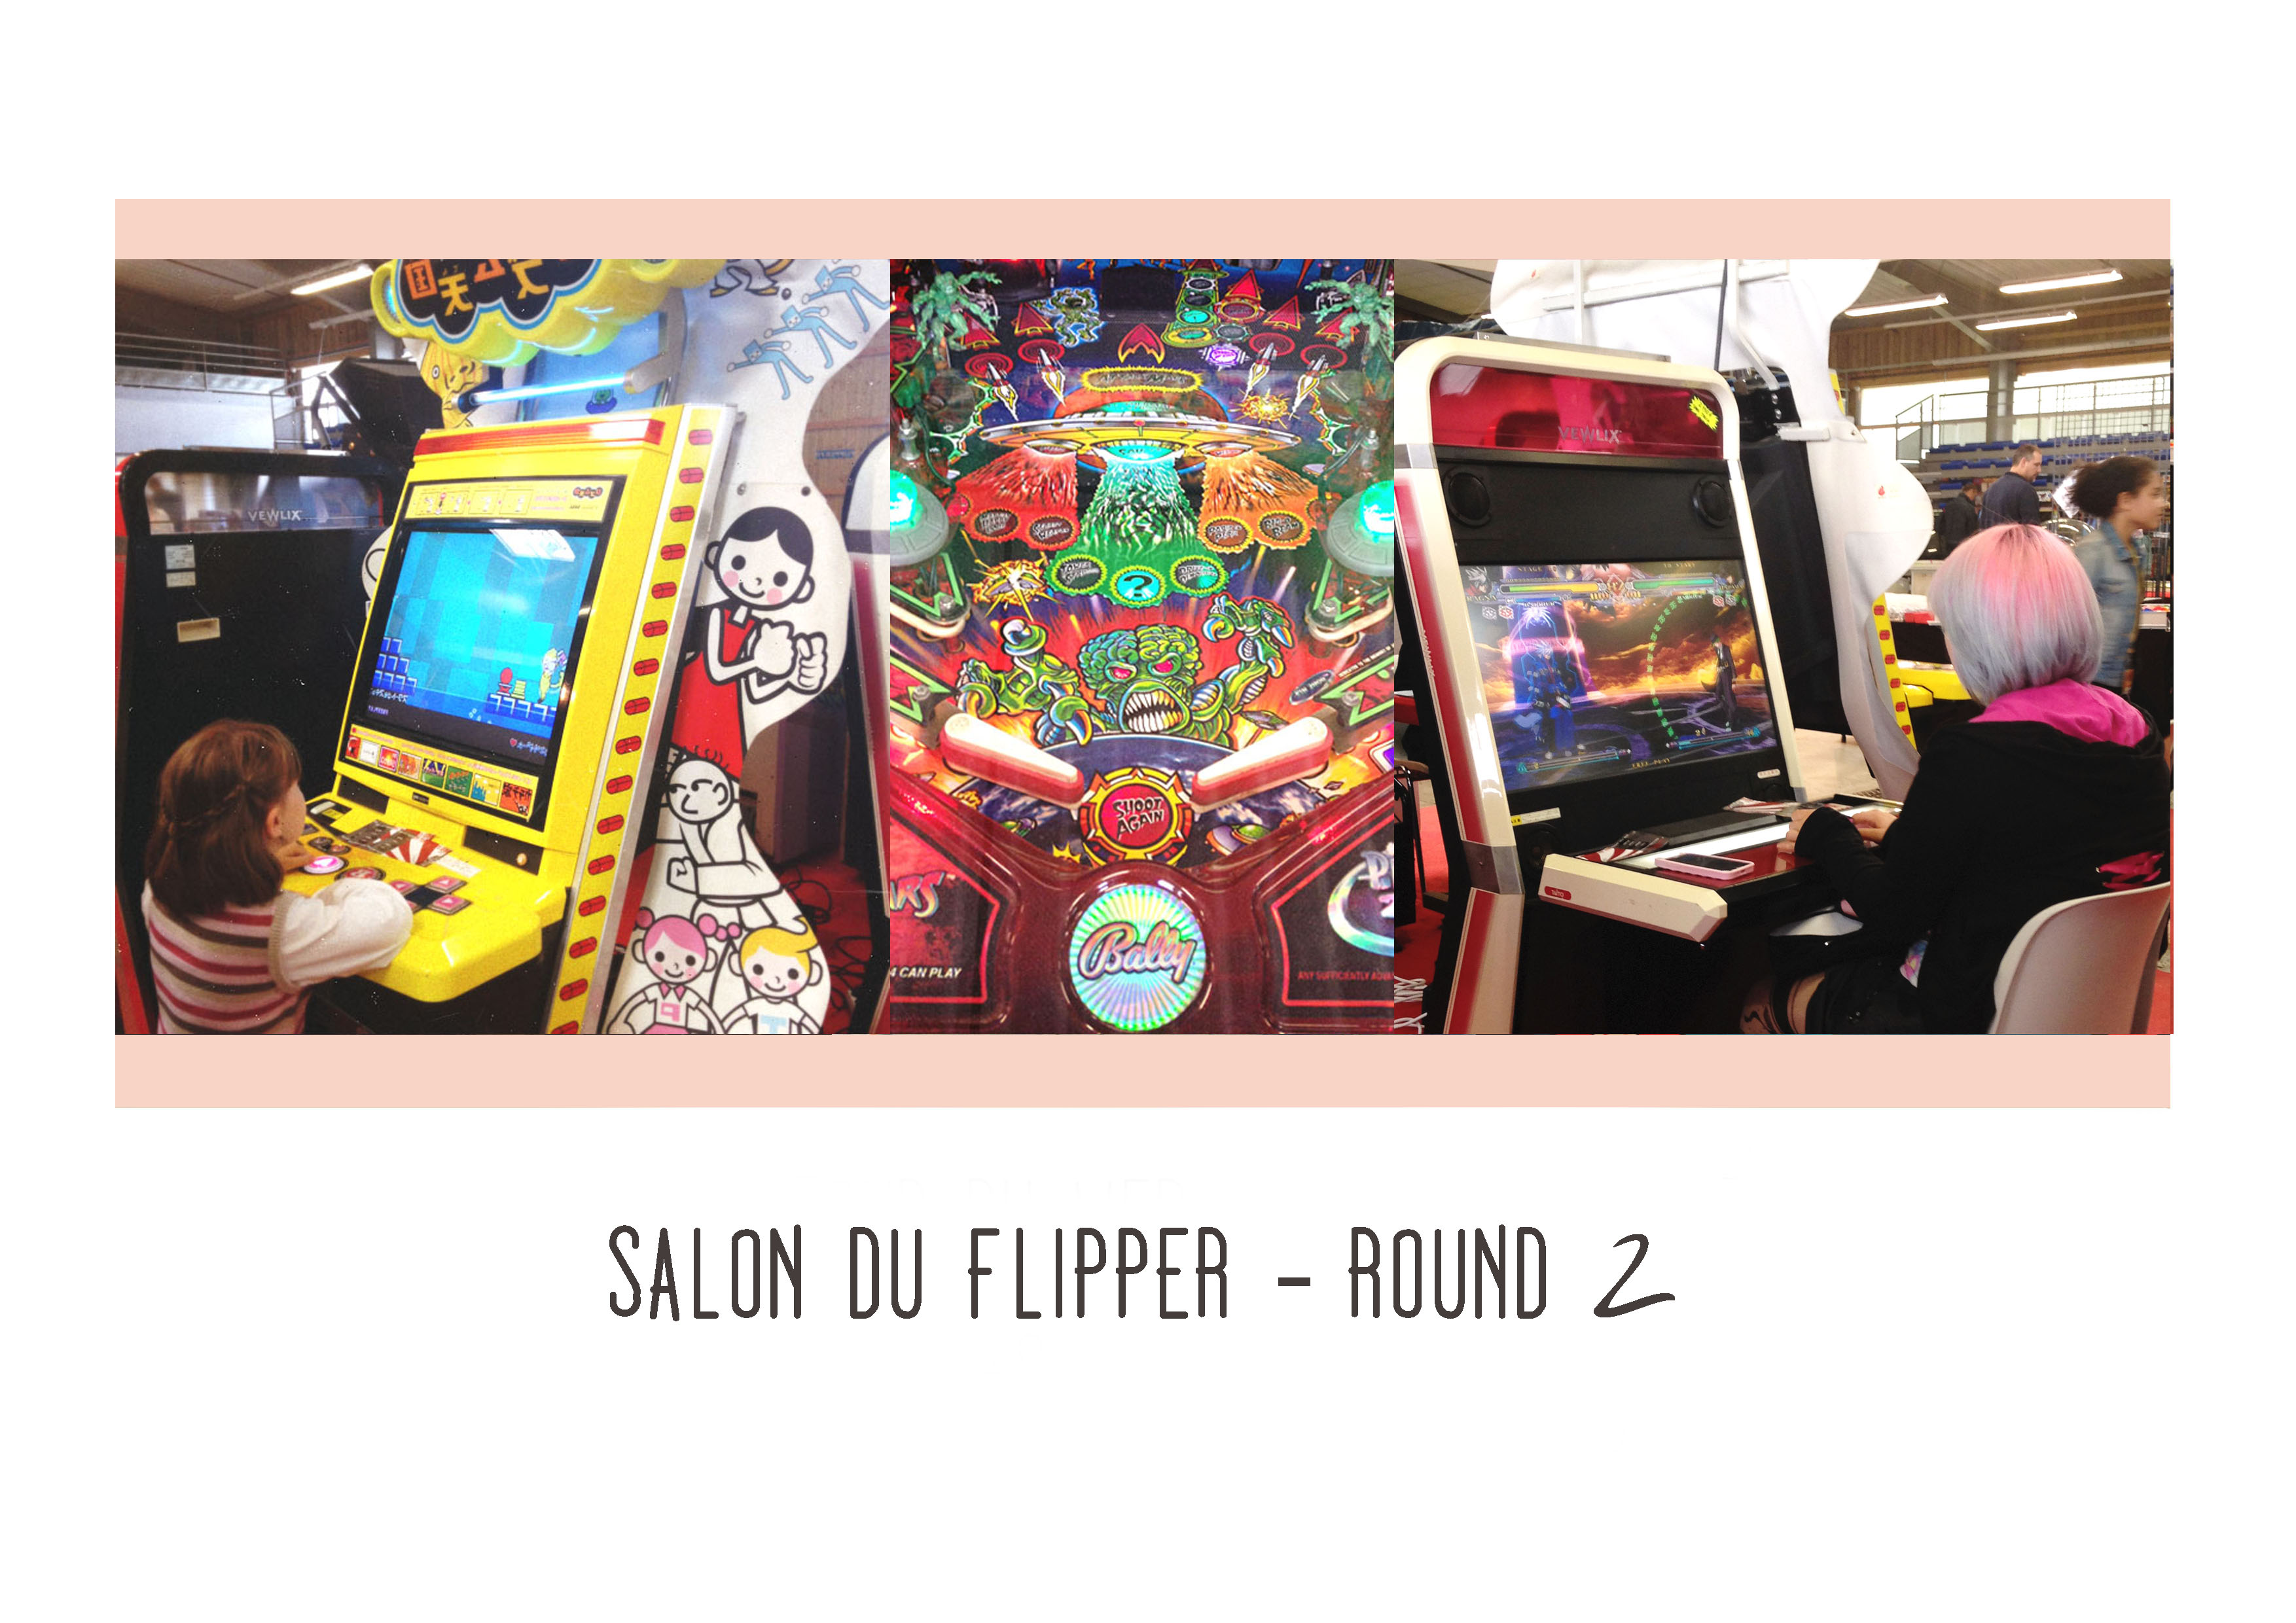 salon du flipper round 2